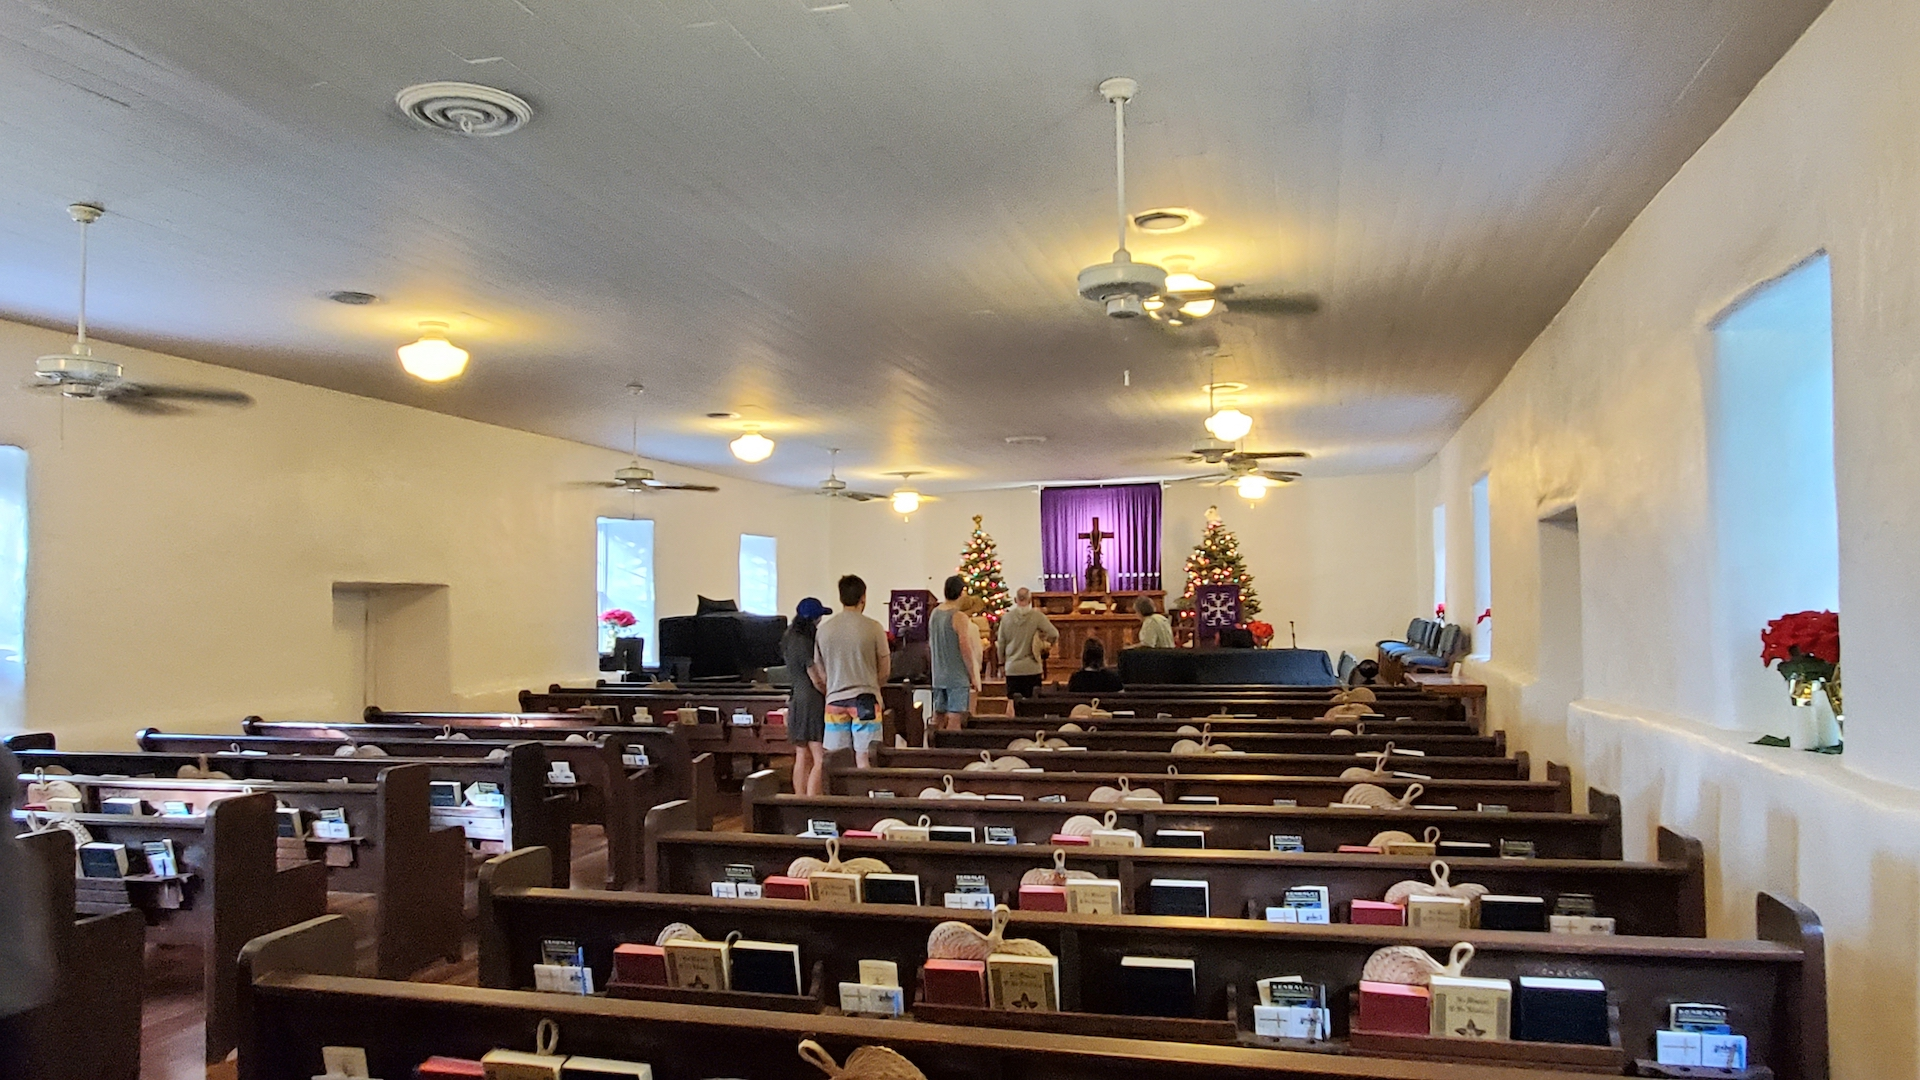 View of the interior of the Keawala'i Congregational Church.